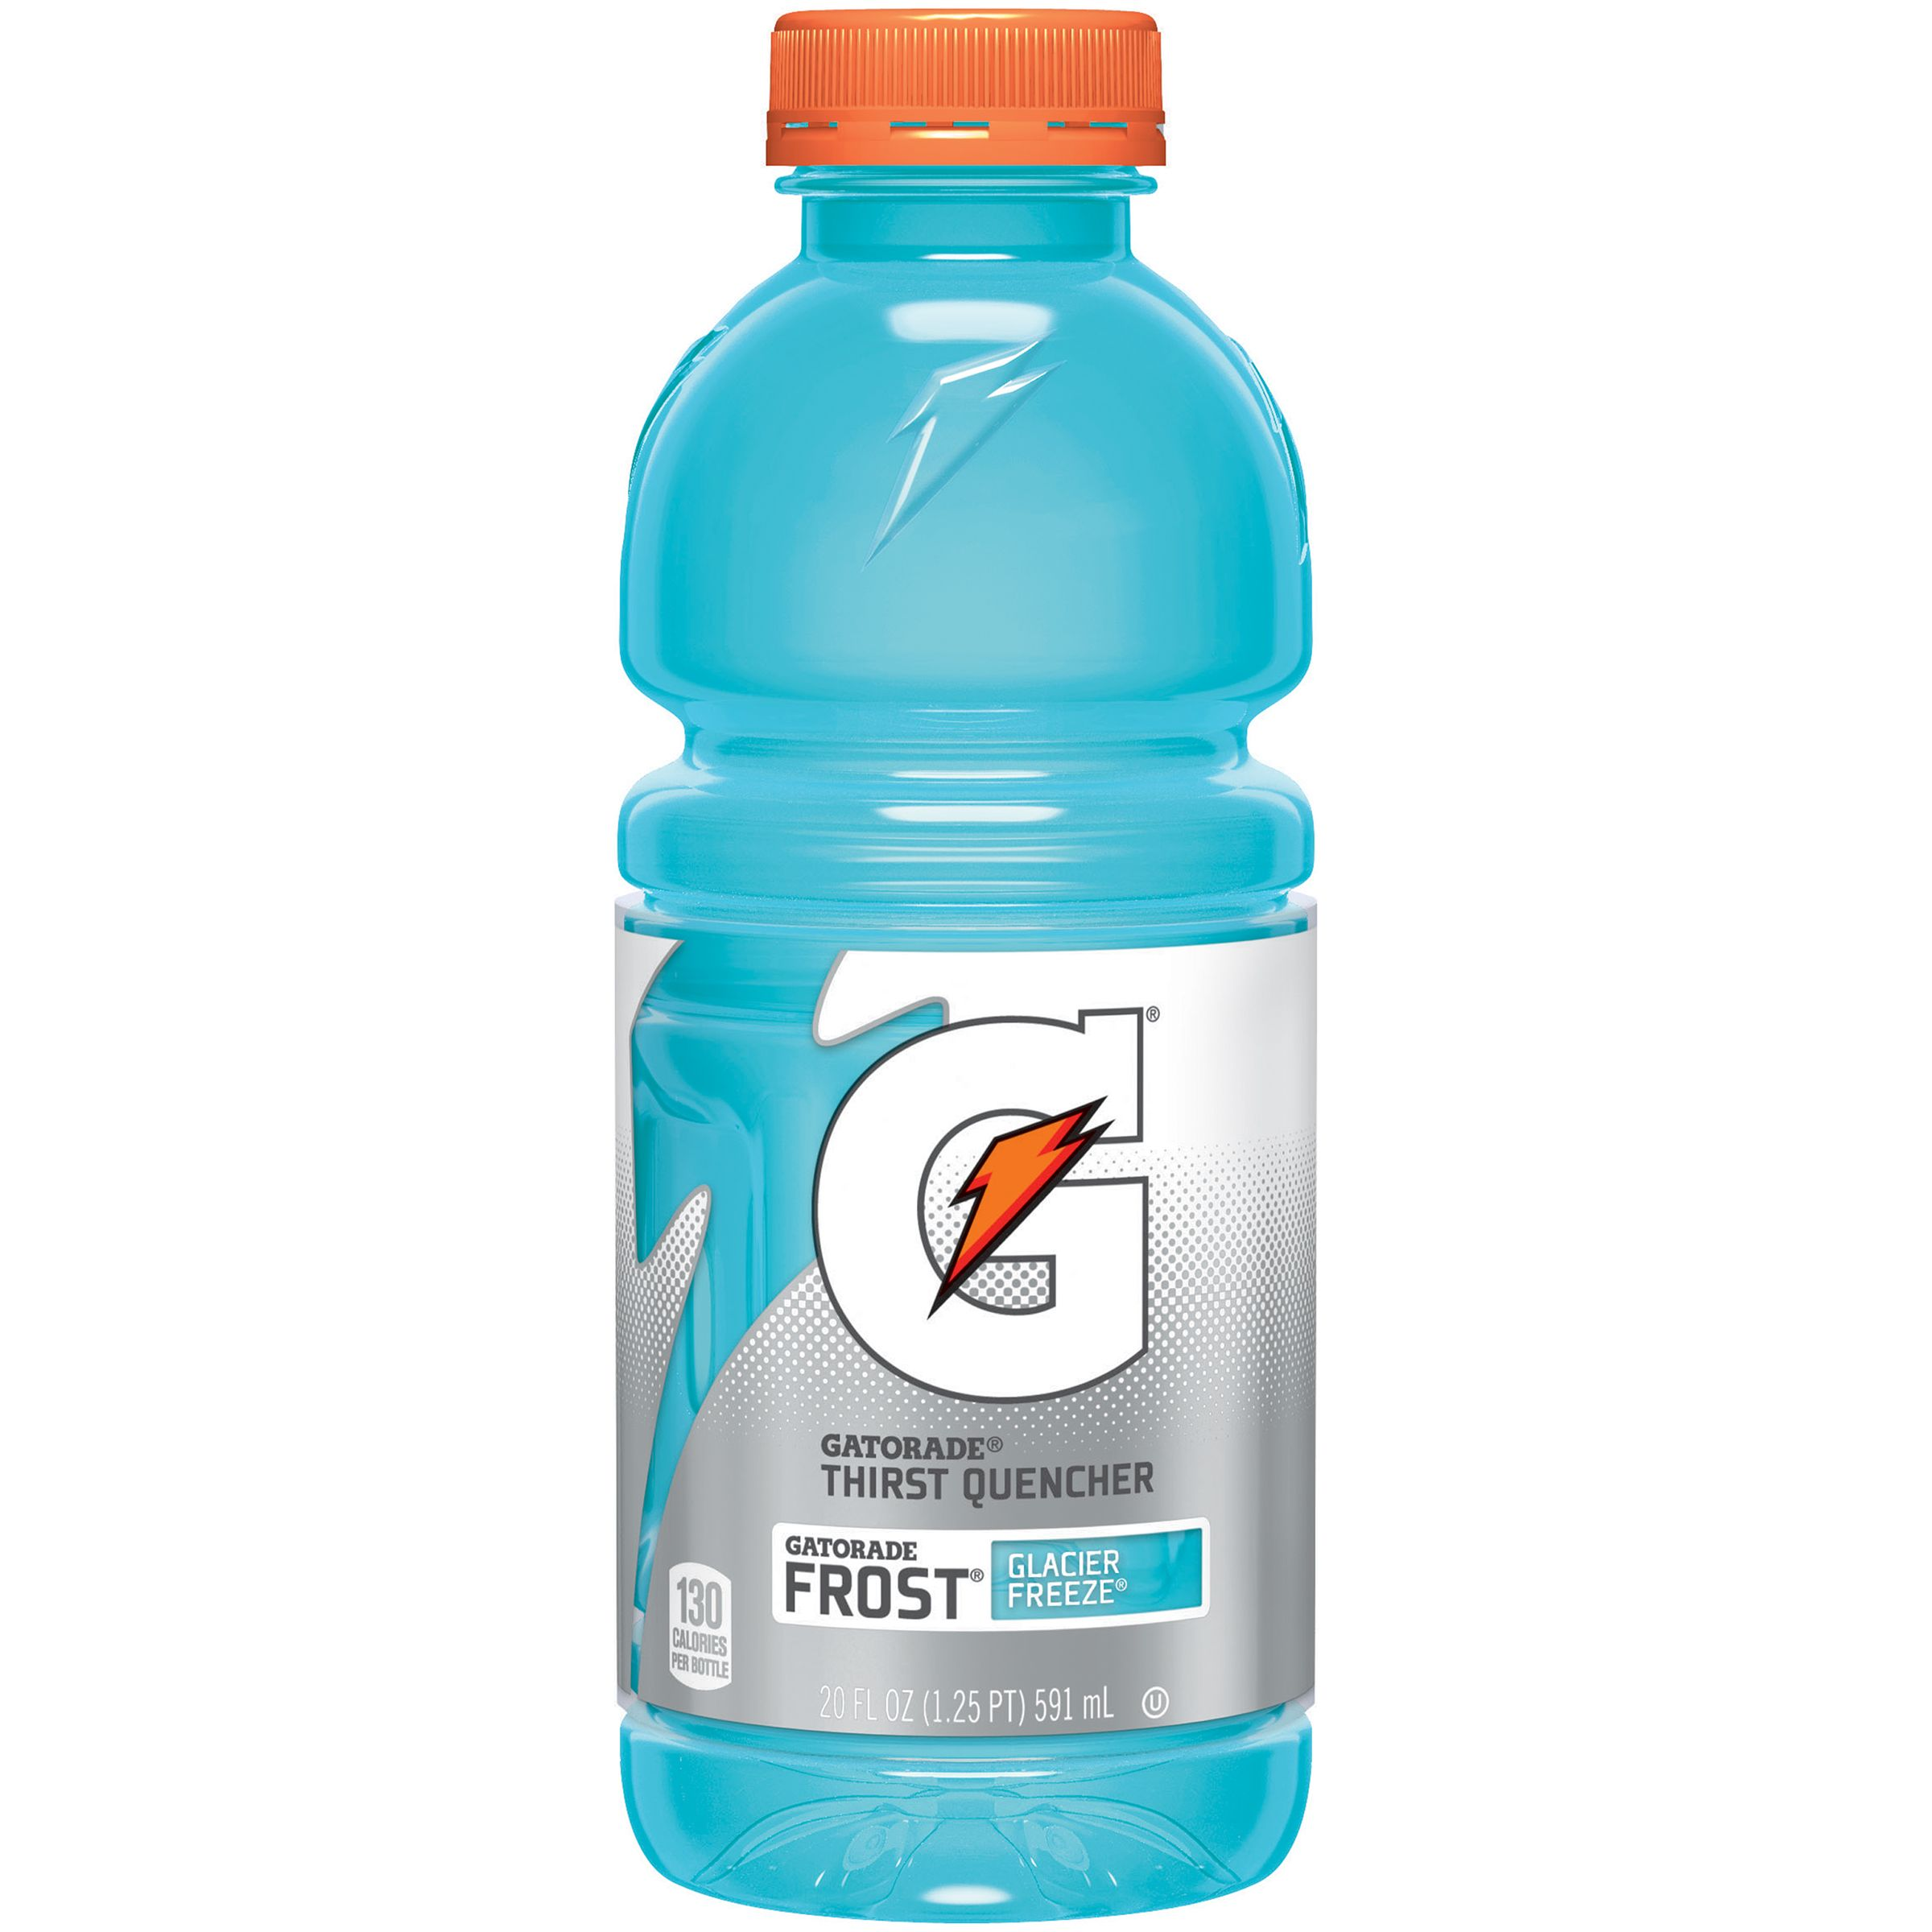 Gatorade clipart 4 » Clipart Station.